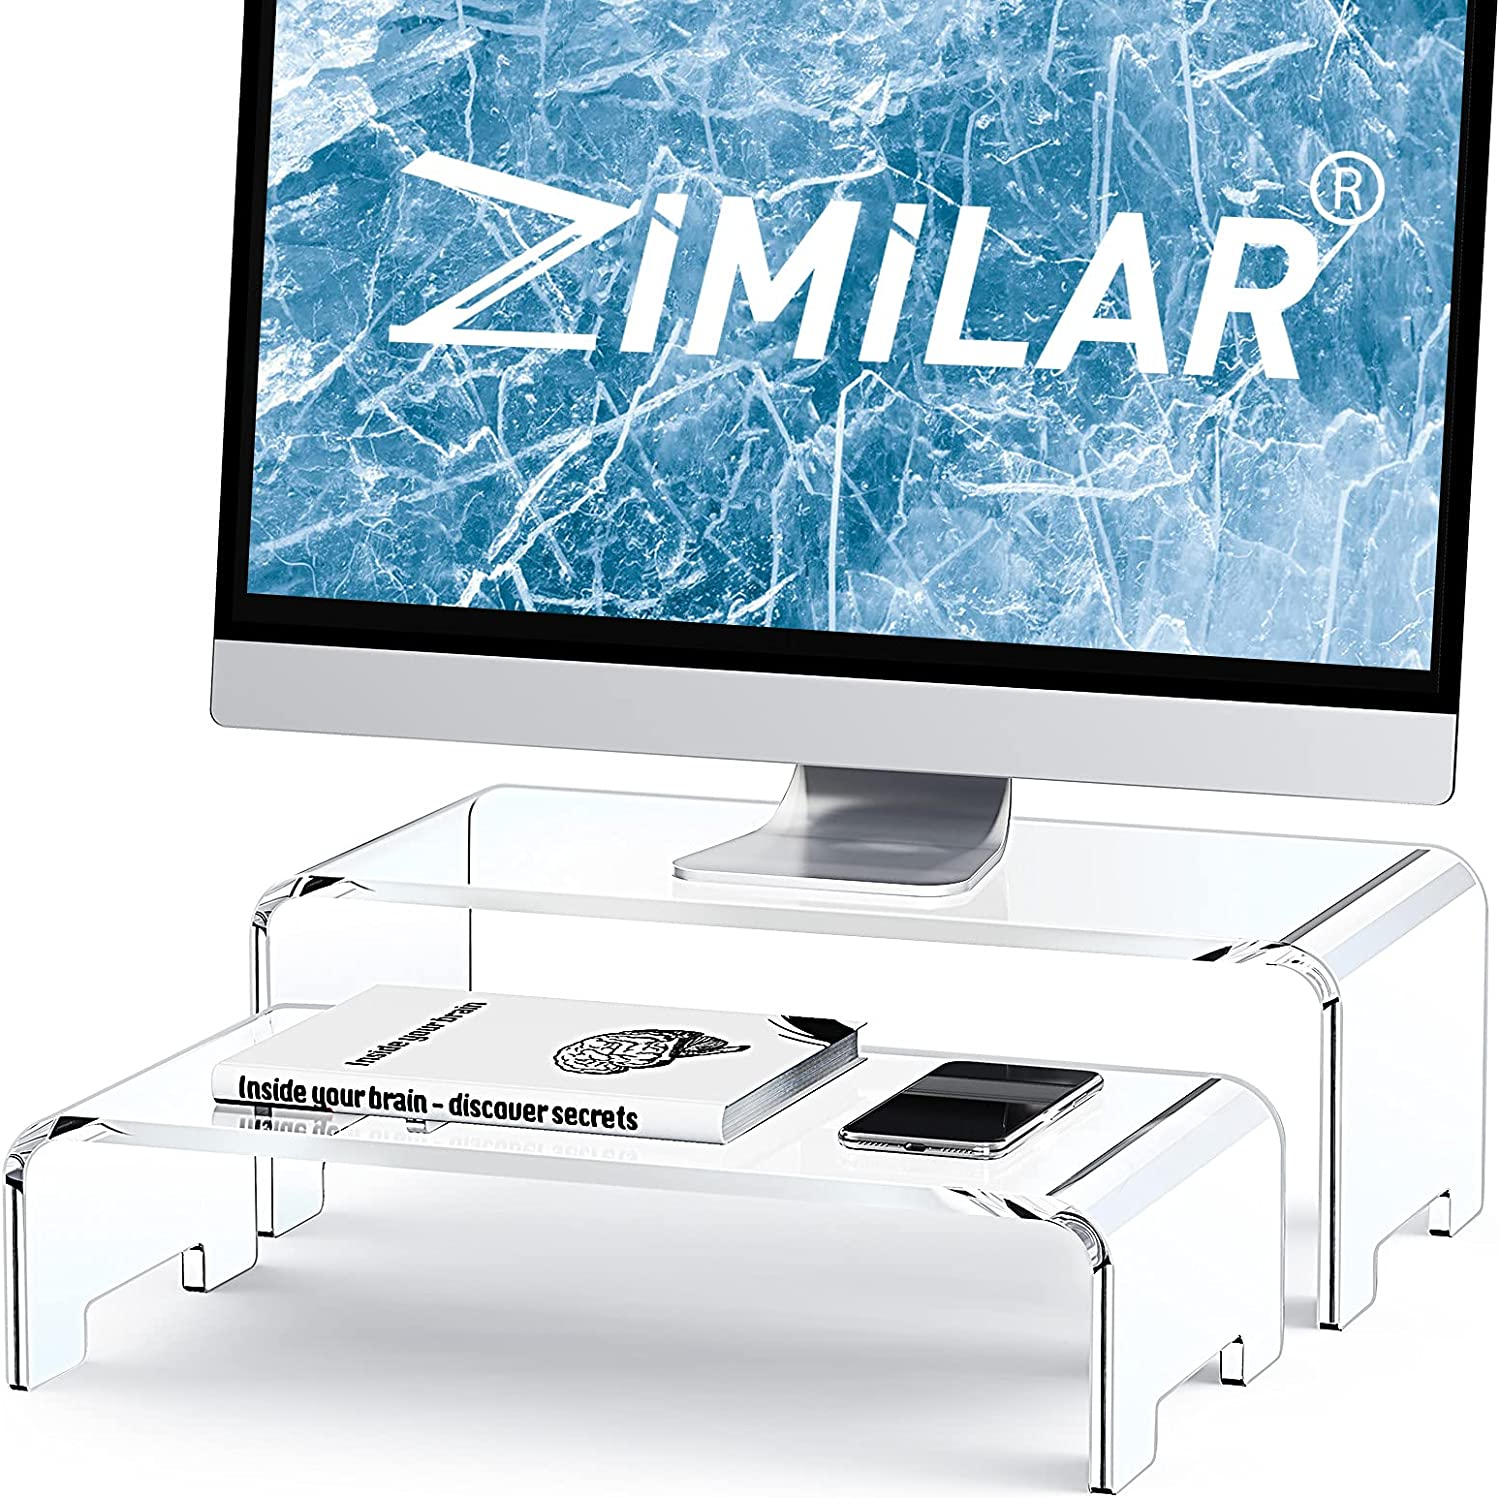 Zimilar 2 Pack Monitor Stand Riser, Acrylic Computer Stand Riser for Computer, Laptop, Printer, Notebook, iMac, Crystal Clear Laptop Stand and Monitor Riser for 2 Monitors